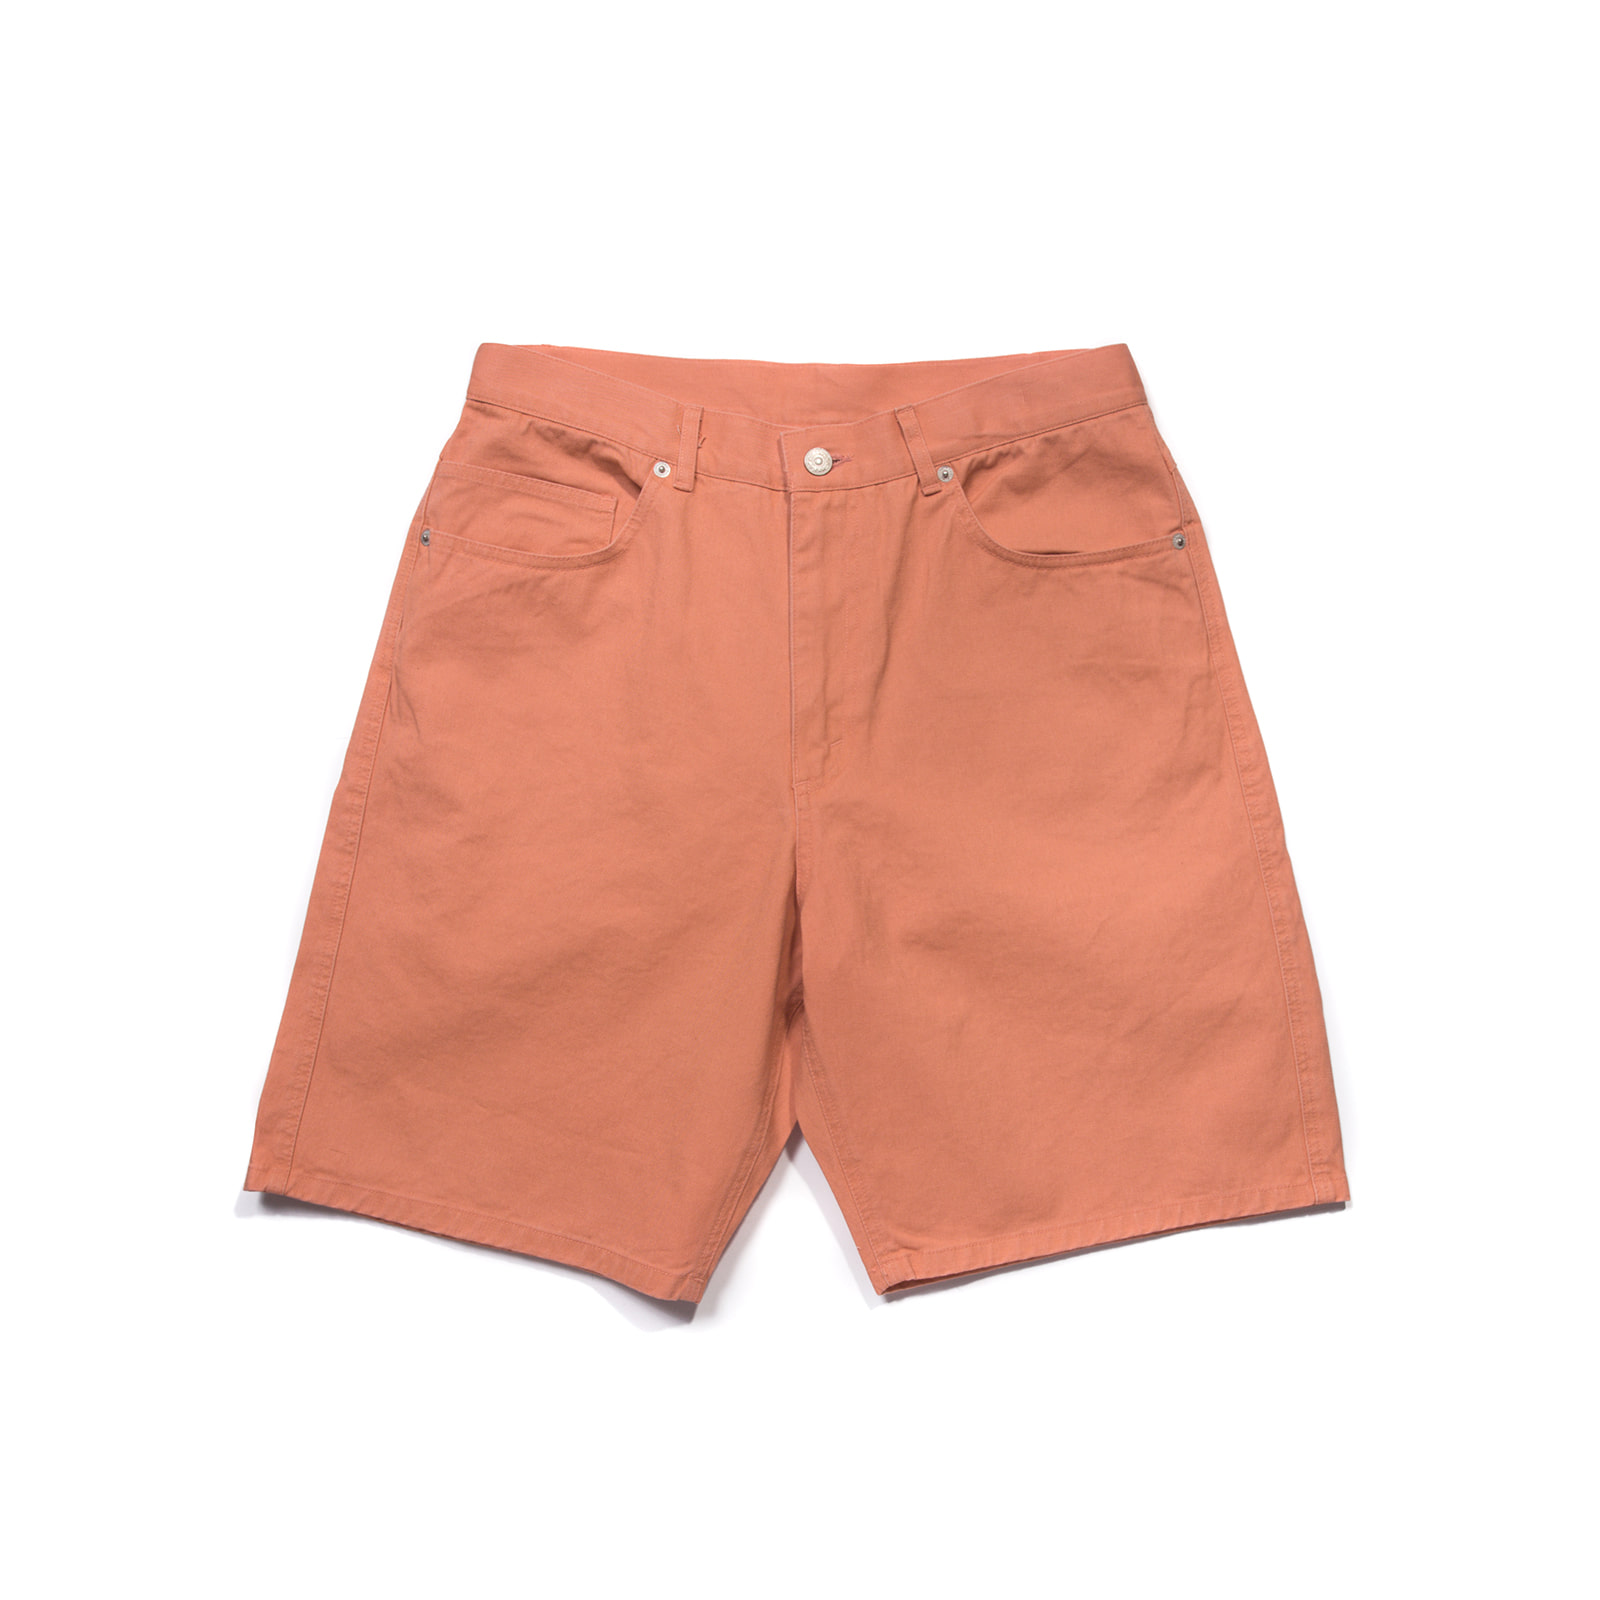 OVERSIZED CHINO SHORTS (CORAL)